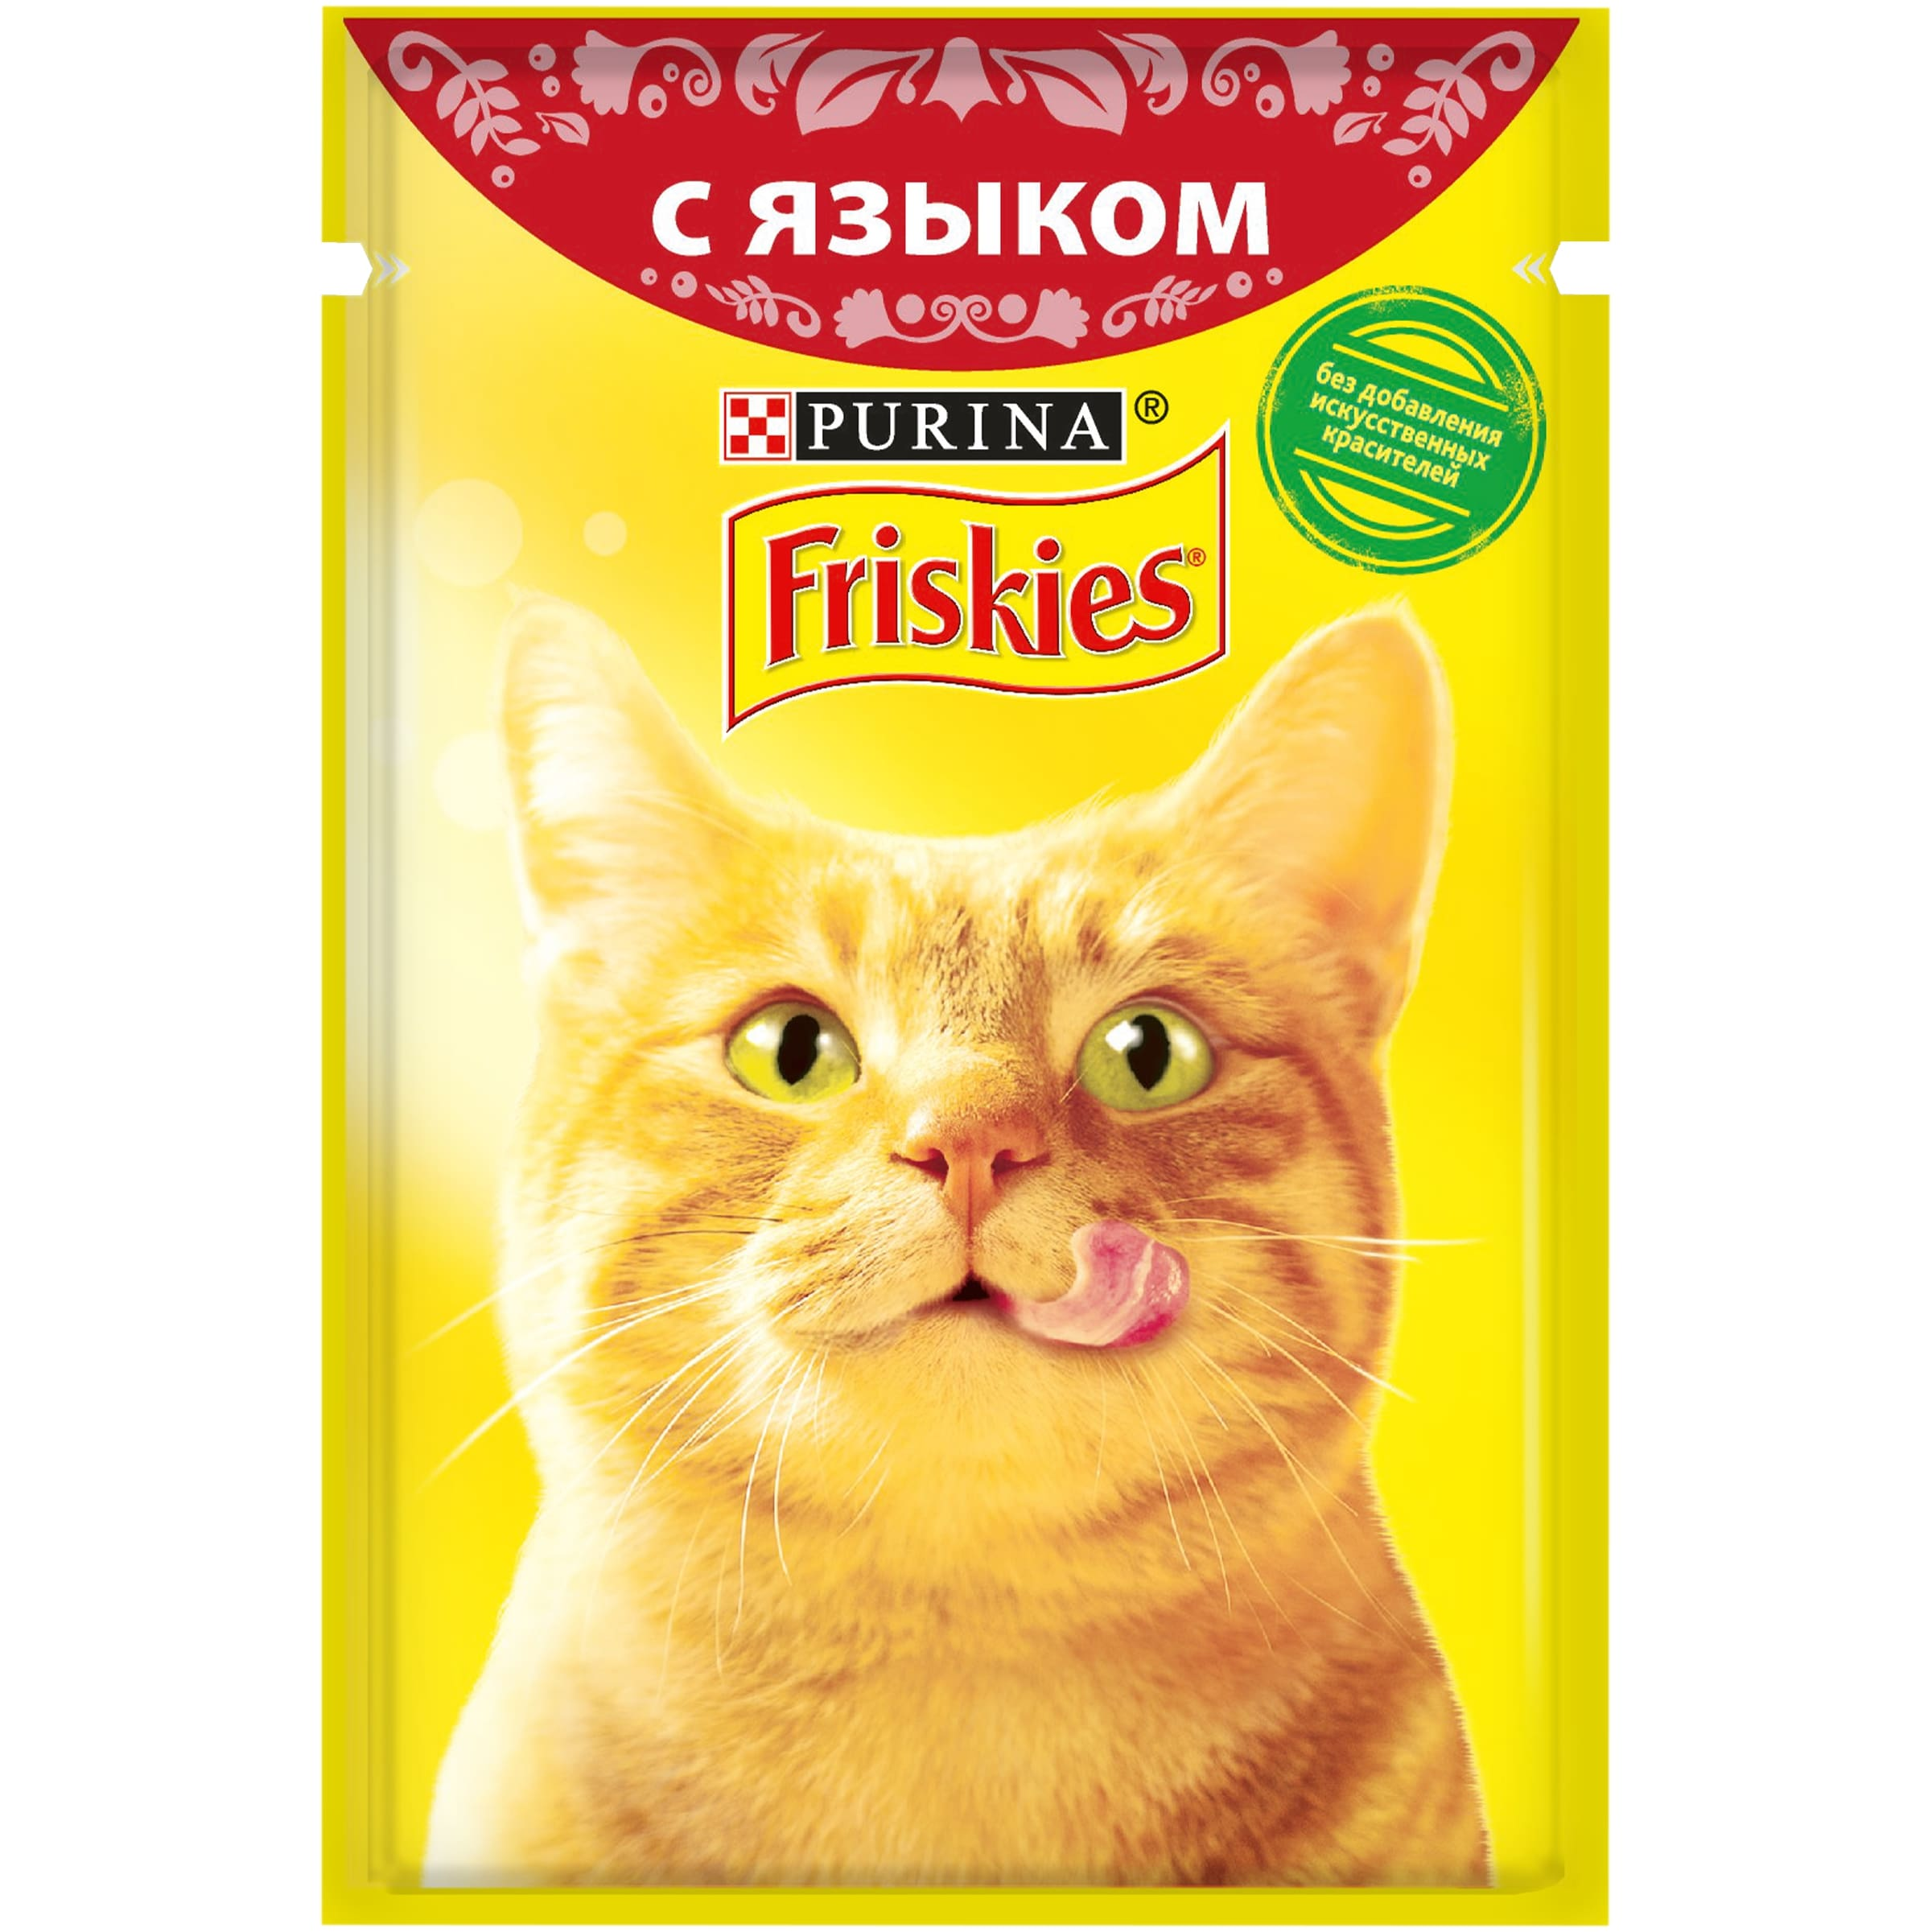 Wet food Friskies for cats with tongue in gravy, 24 pouch x 85 g felix wet fodder for cats in assortment 85 g x 72 pcs